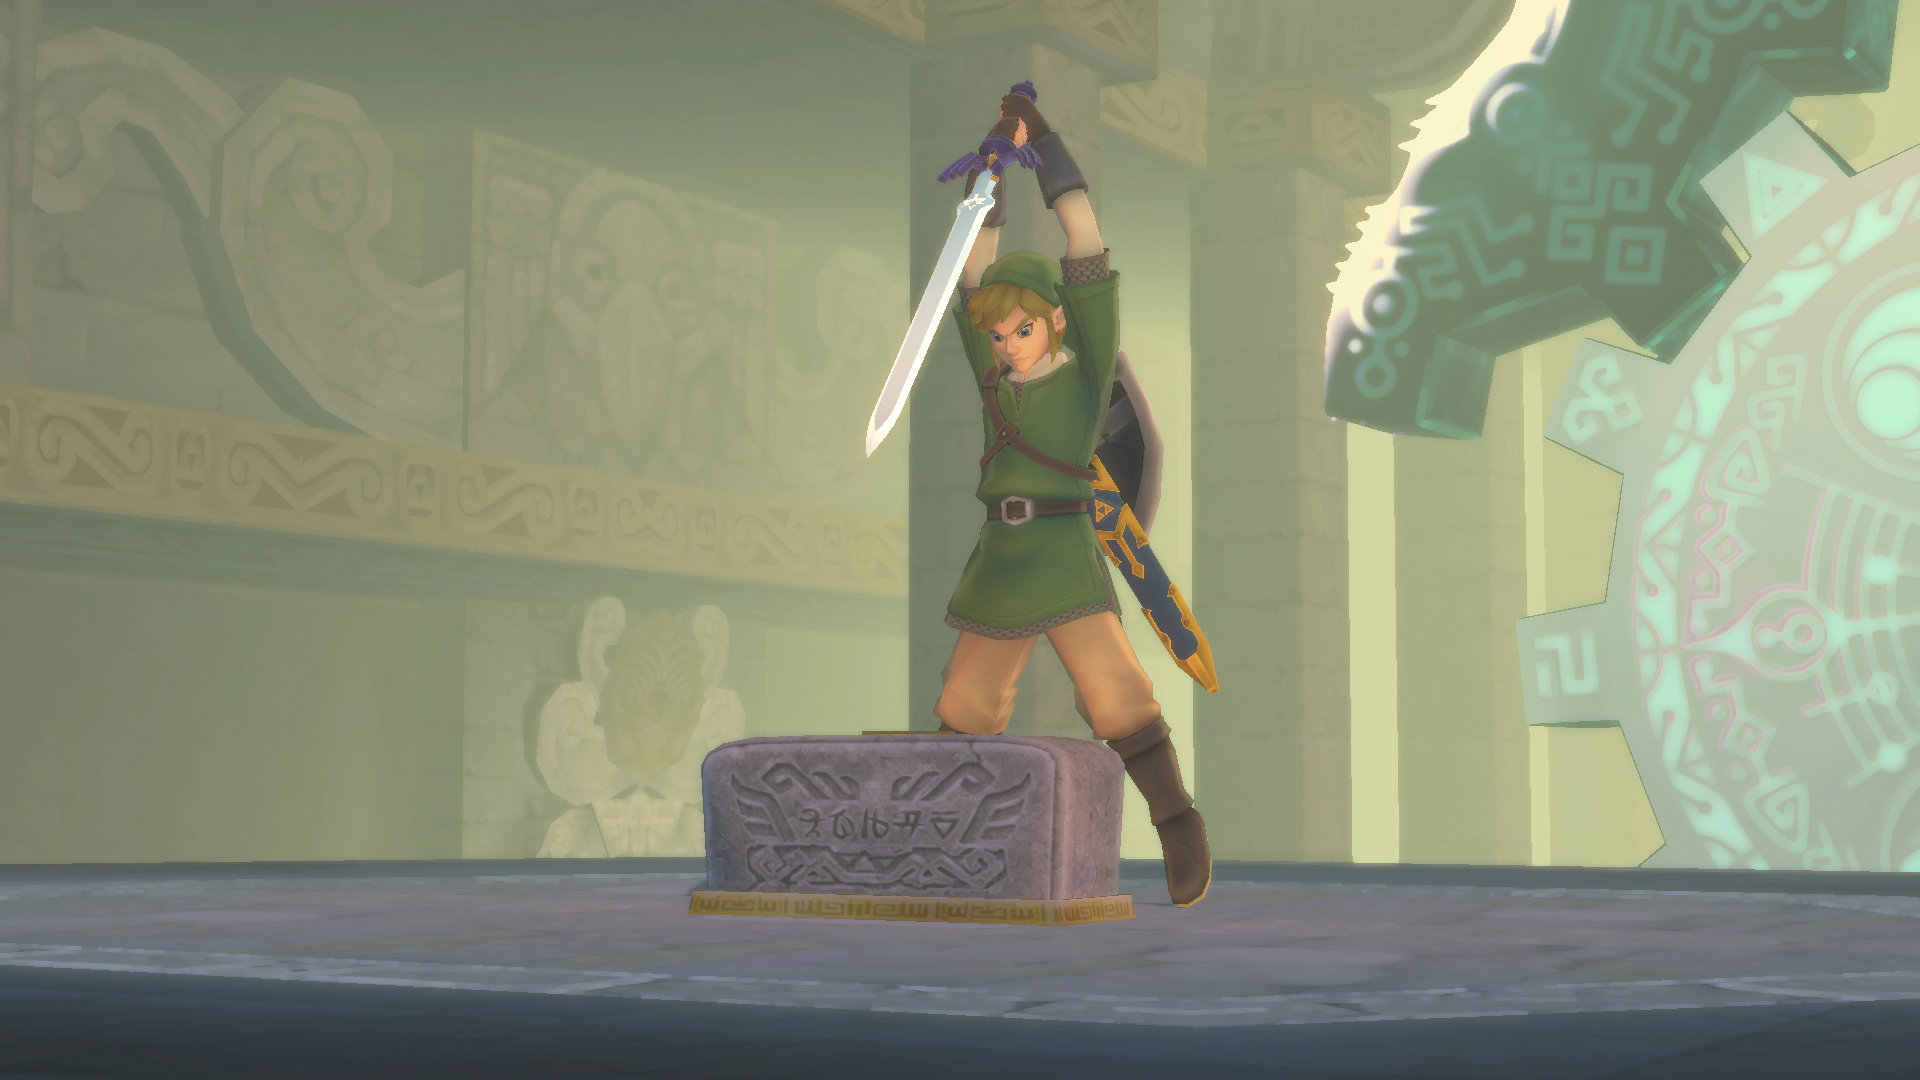 Link holding a sword